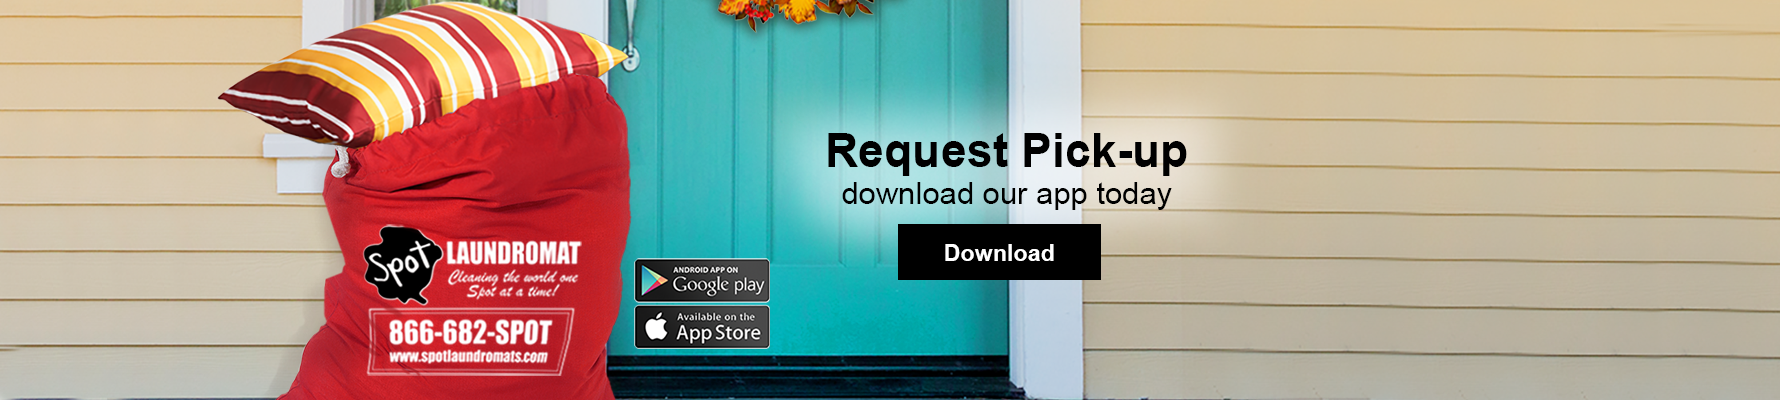 request pick-up, download our app today.